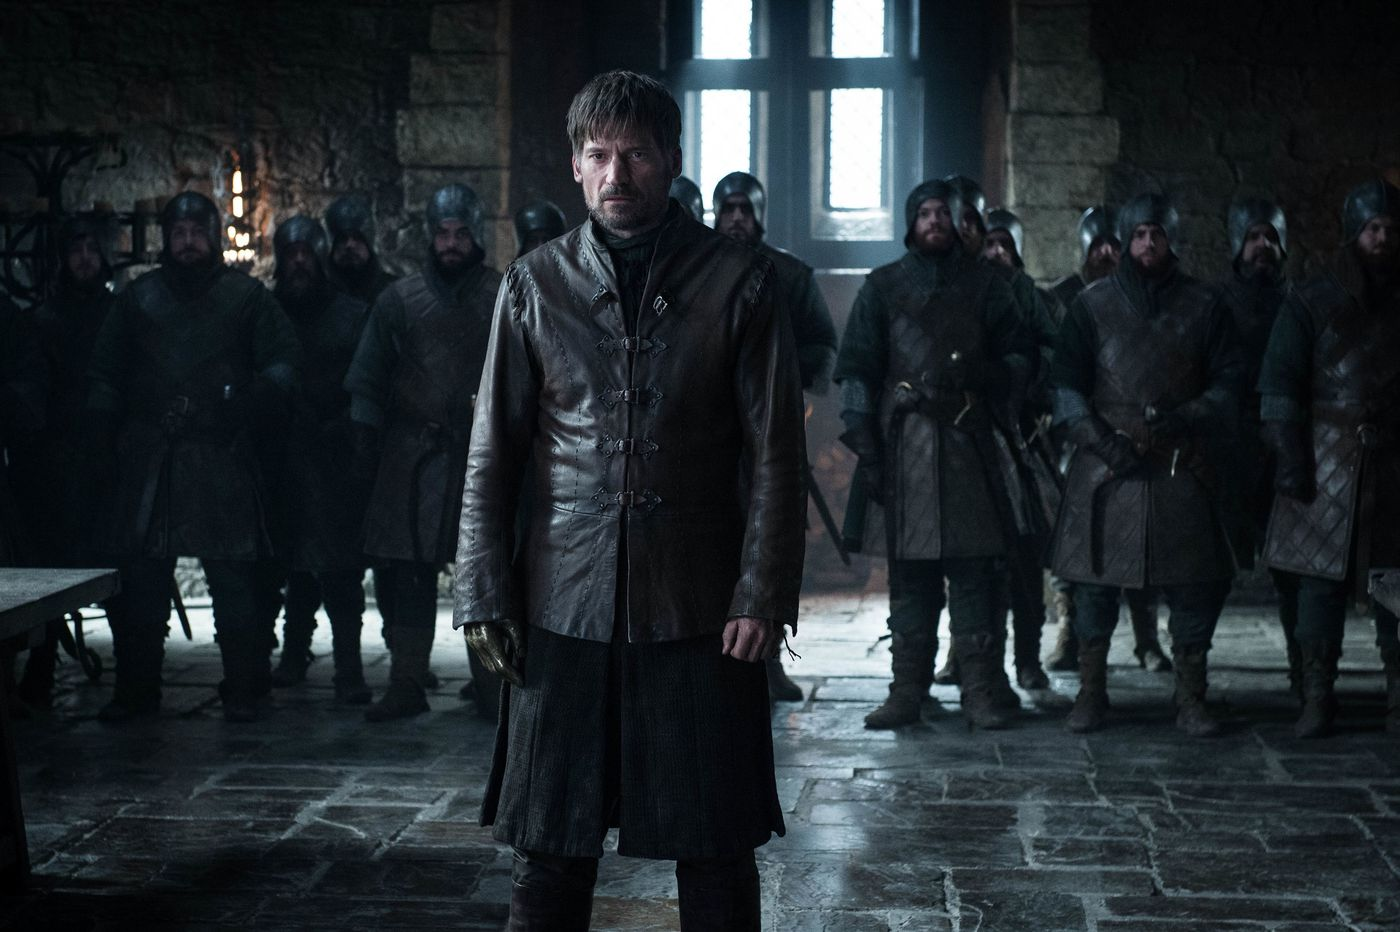 'Game of Thrones' review: A knight before battle